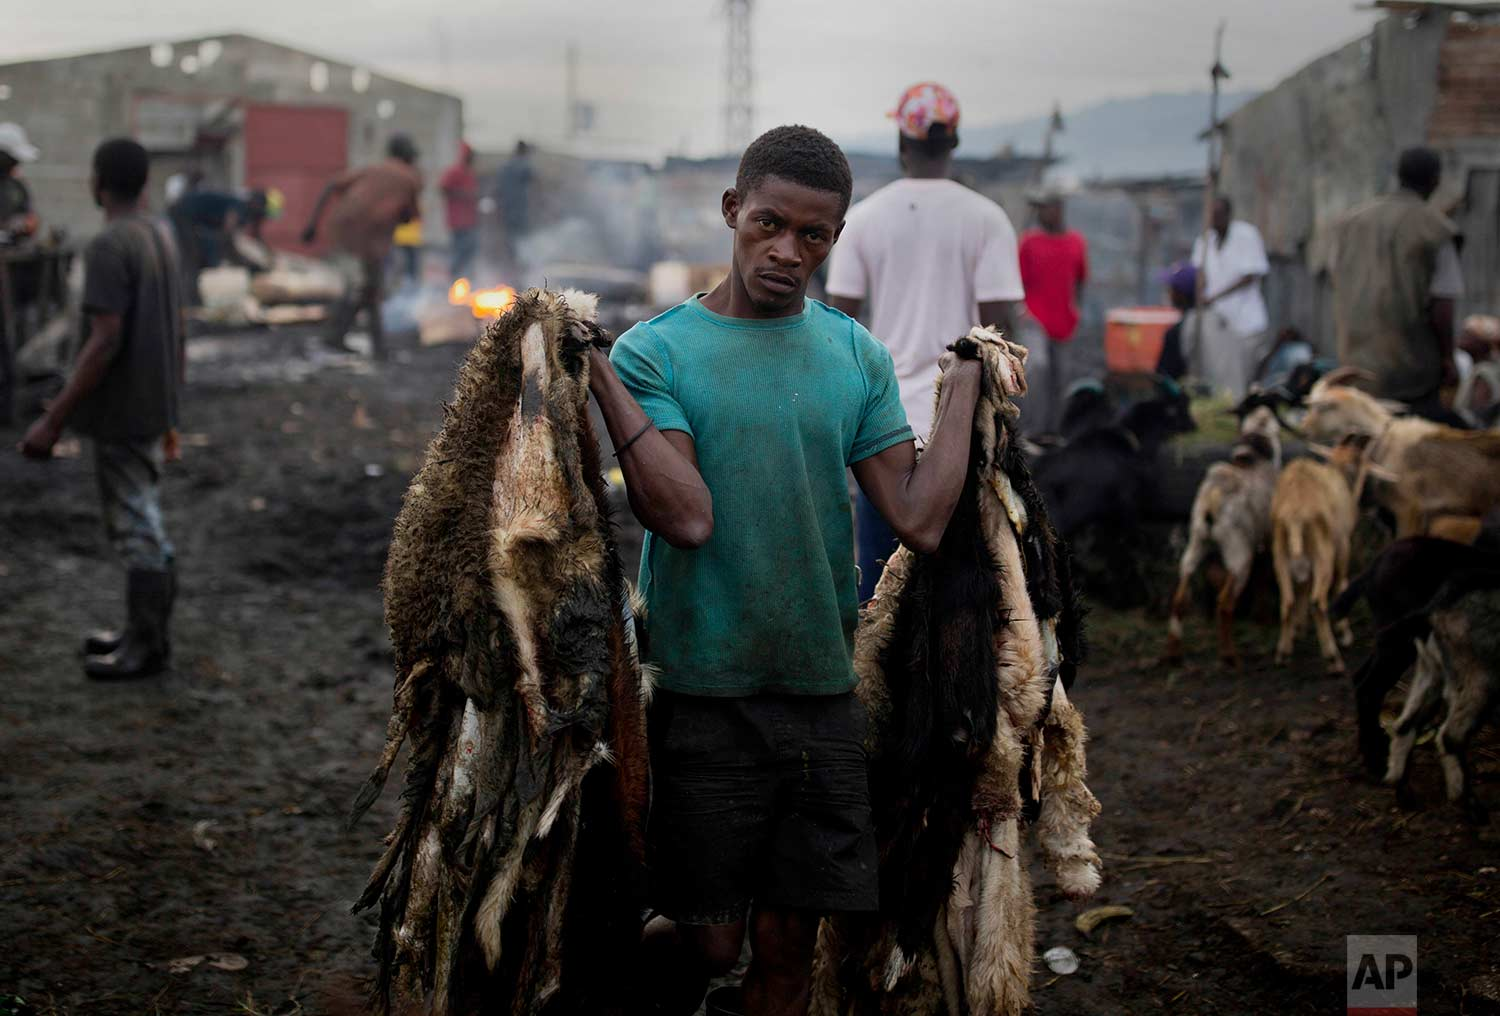 In this Nov. 9, 2017 photo, goat skinner Sonson Pierre hauls goat pelts at the La Saline slaughterhouse, in Port-au-Prince, Haiti. The 28-year-old, who has worked at the open-air market for 12 years, is dismayed that a market which provides meat to most of the capital's supermarkets and restaurant, is so unregulated. (AP Photo/Dieu Nalio Chery)